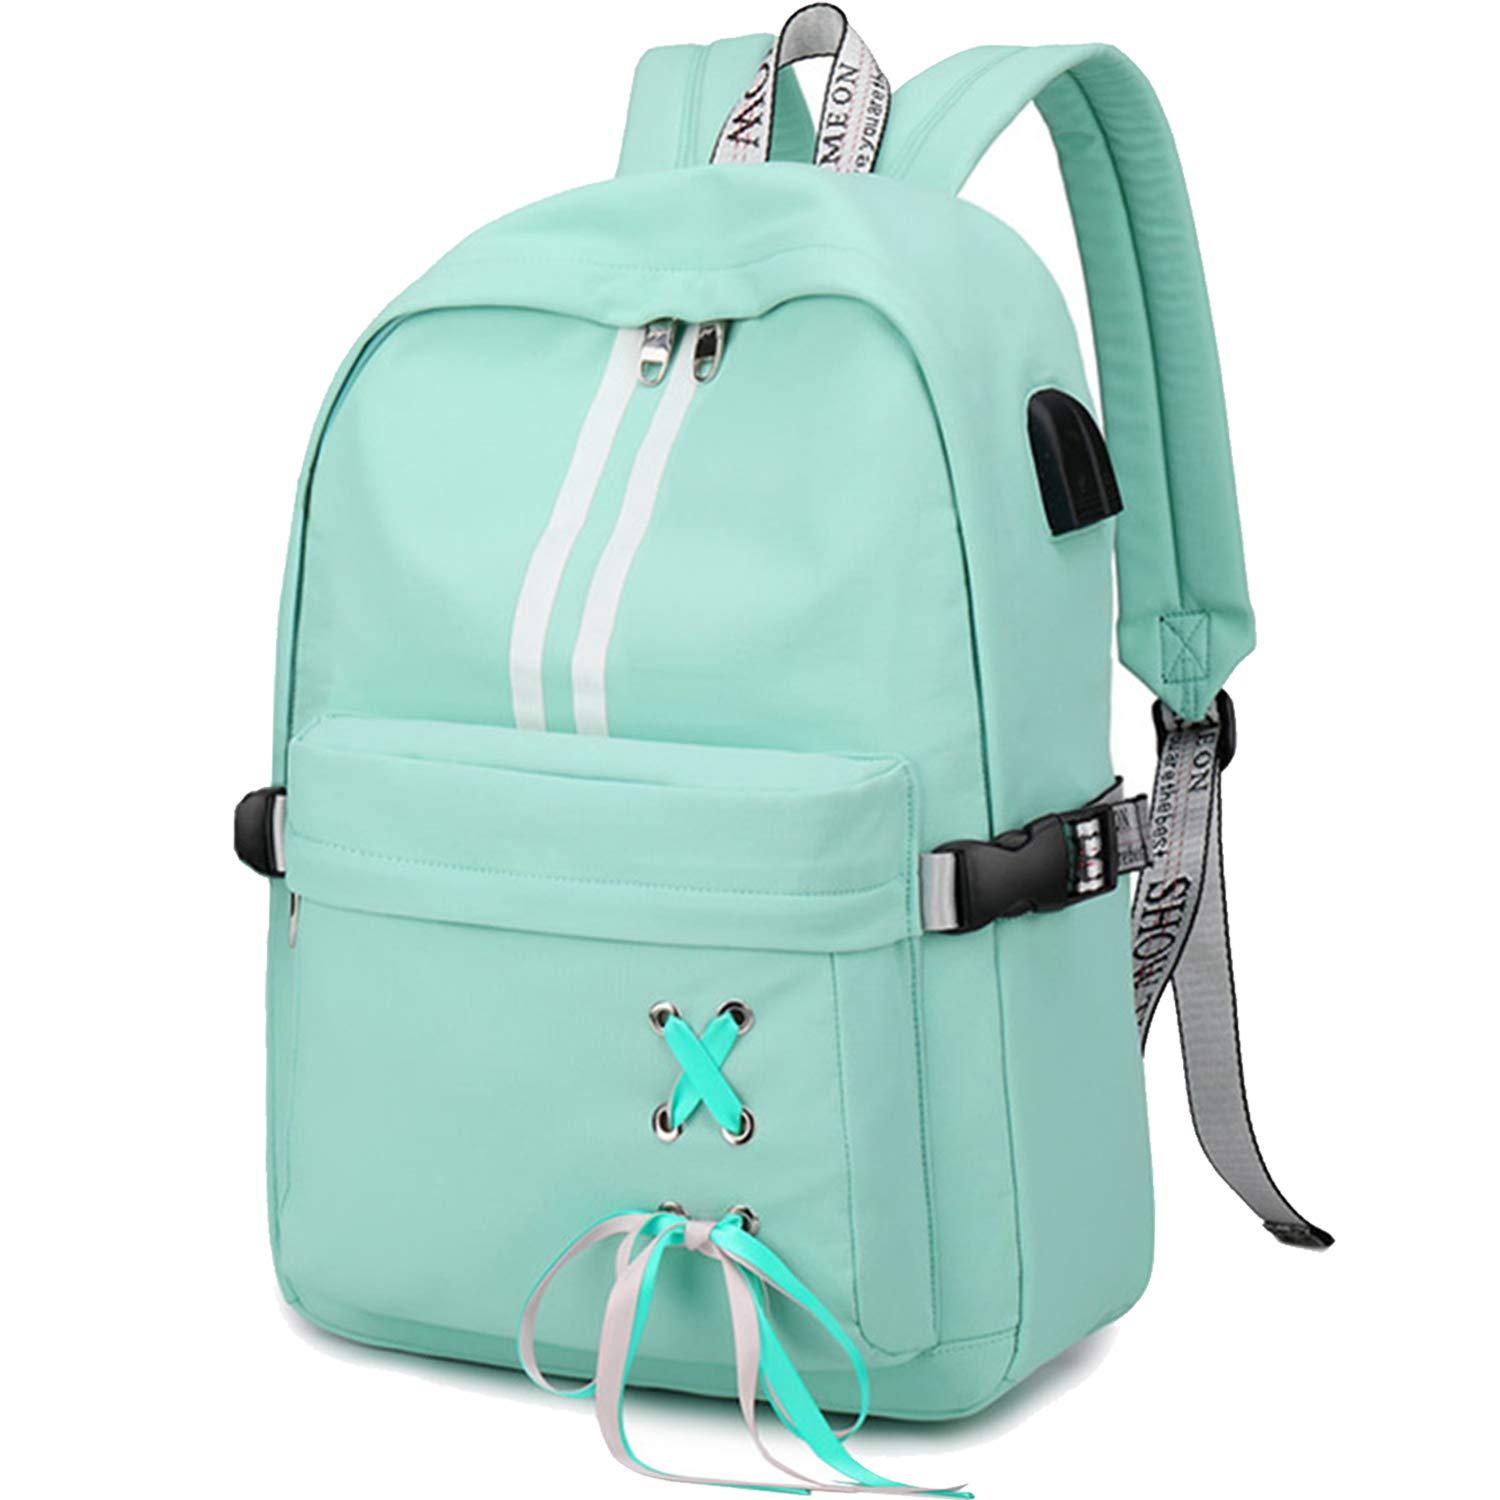 CAMTOP School Laptop Backpack USB College Backpack Casual Travel Daypack with Luggage Strap for Women Girls (Mint Green) by CAMTOP